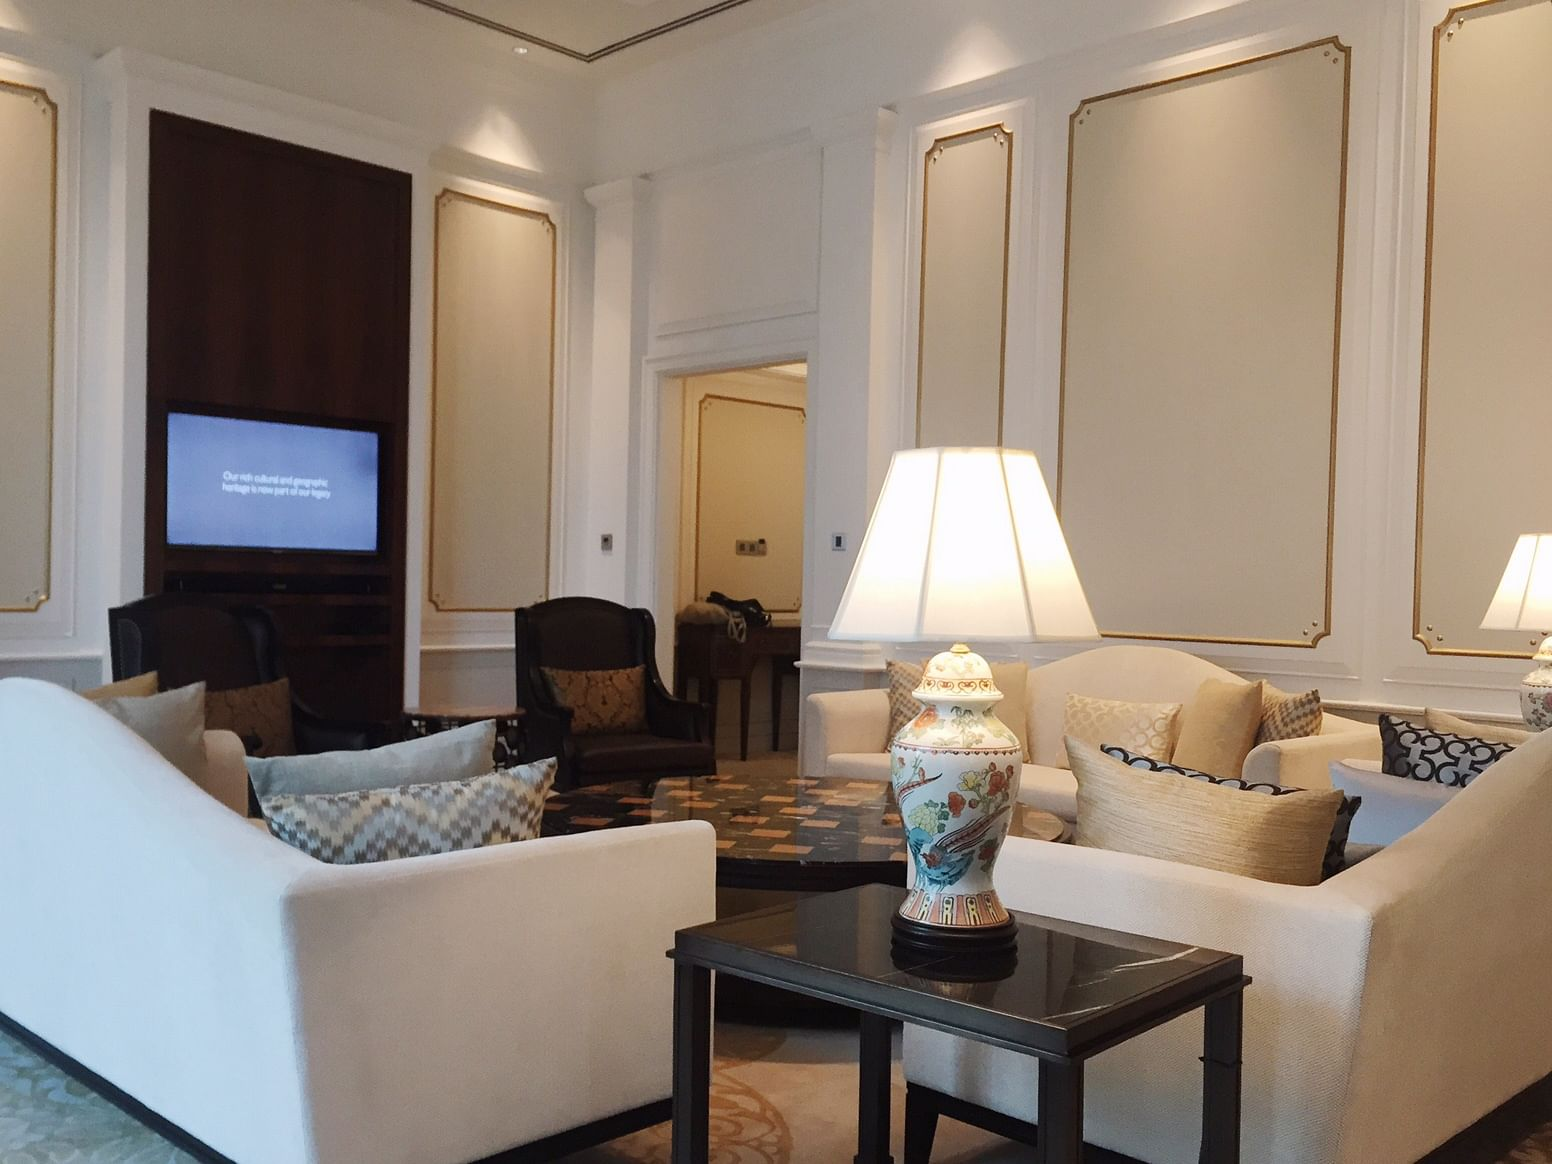 Make your home look like a luxury hotel with these tips! - Home & Decor  Singapore